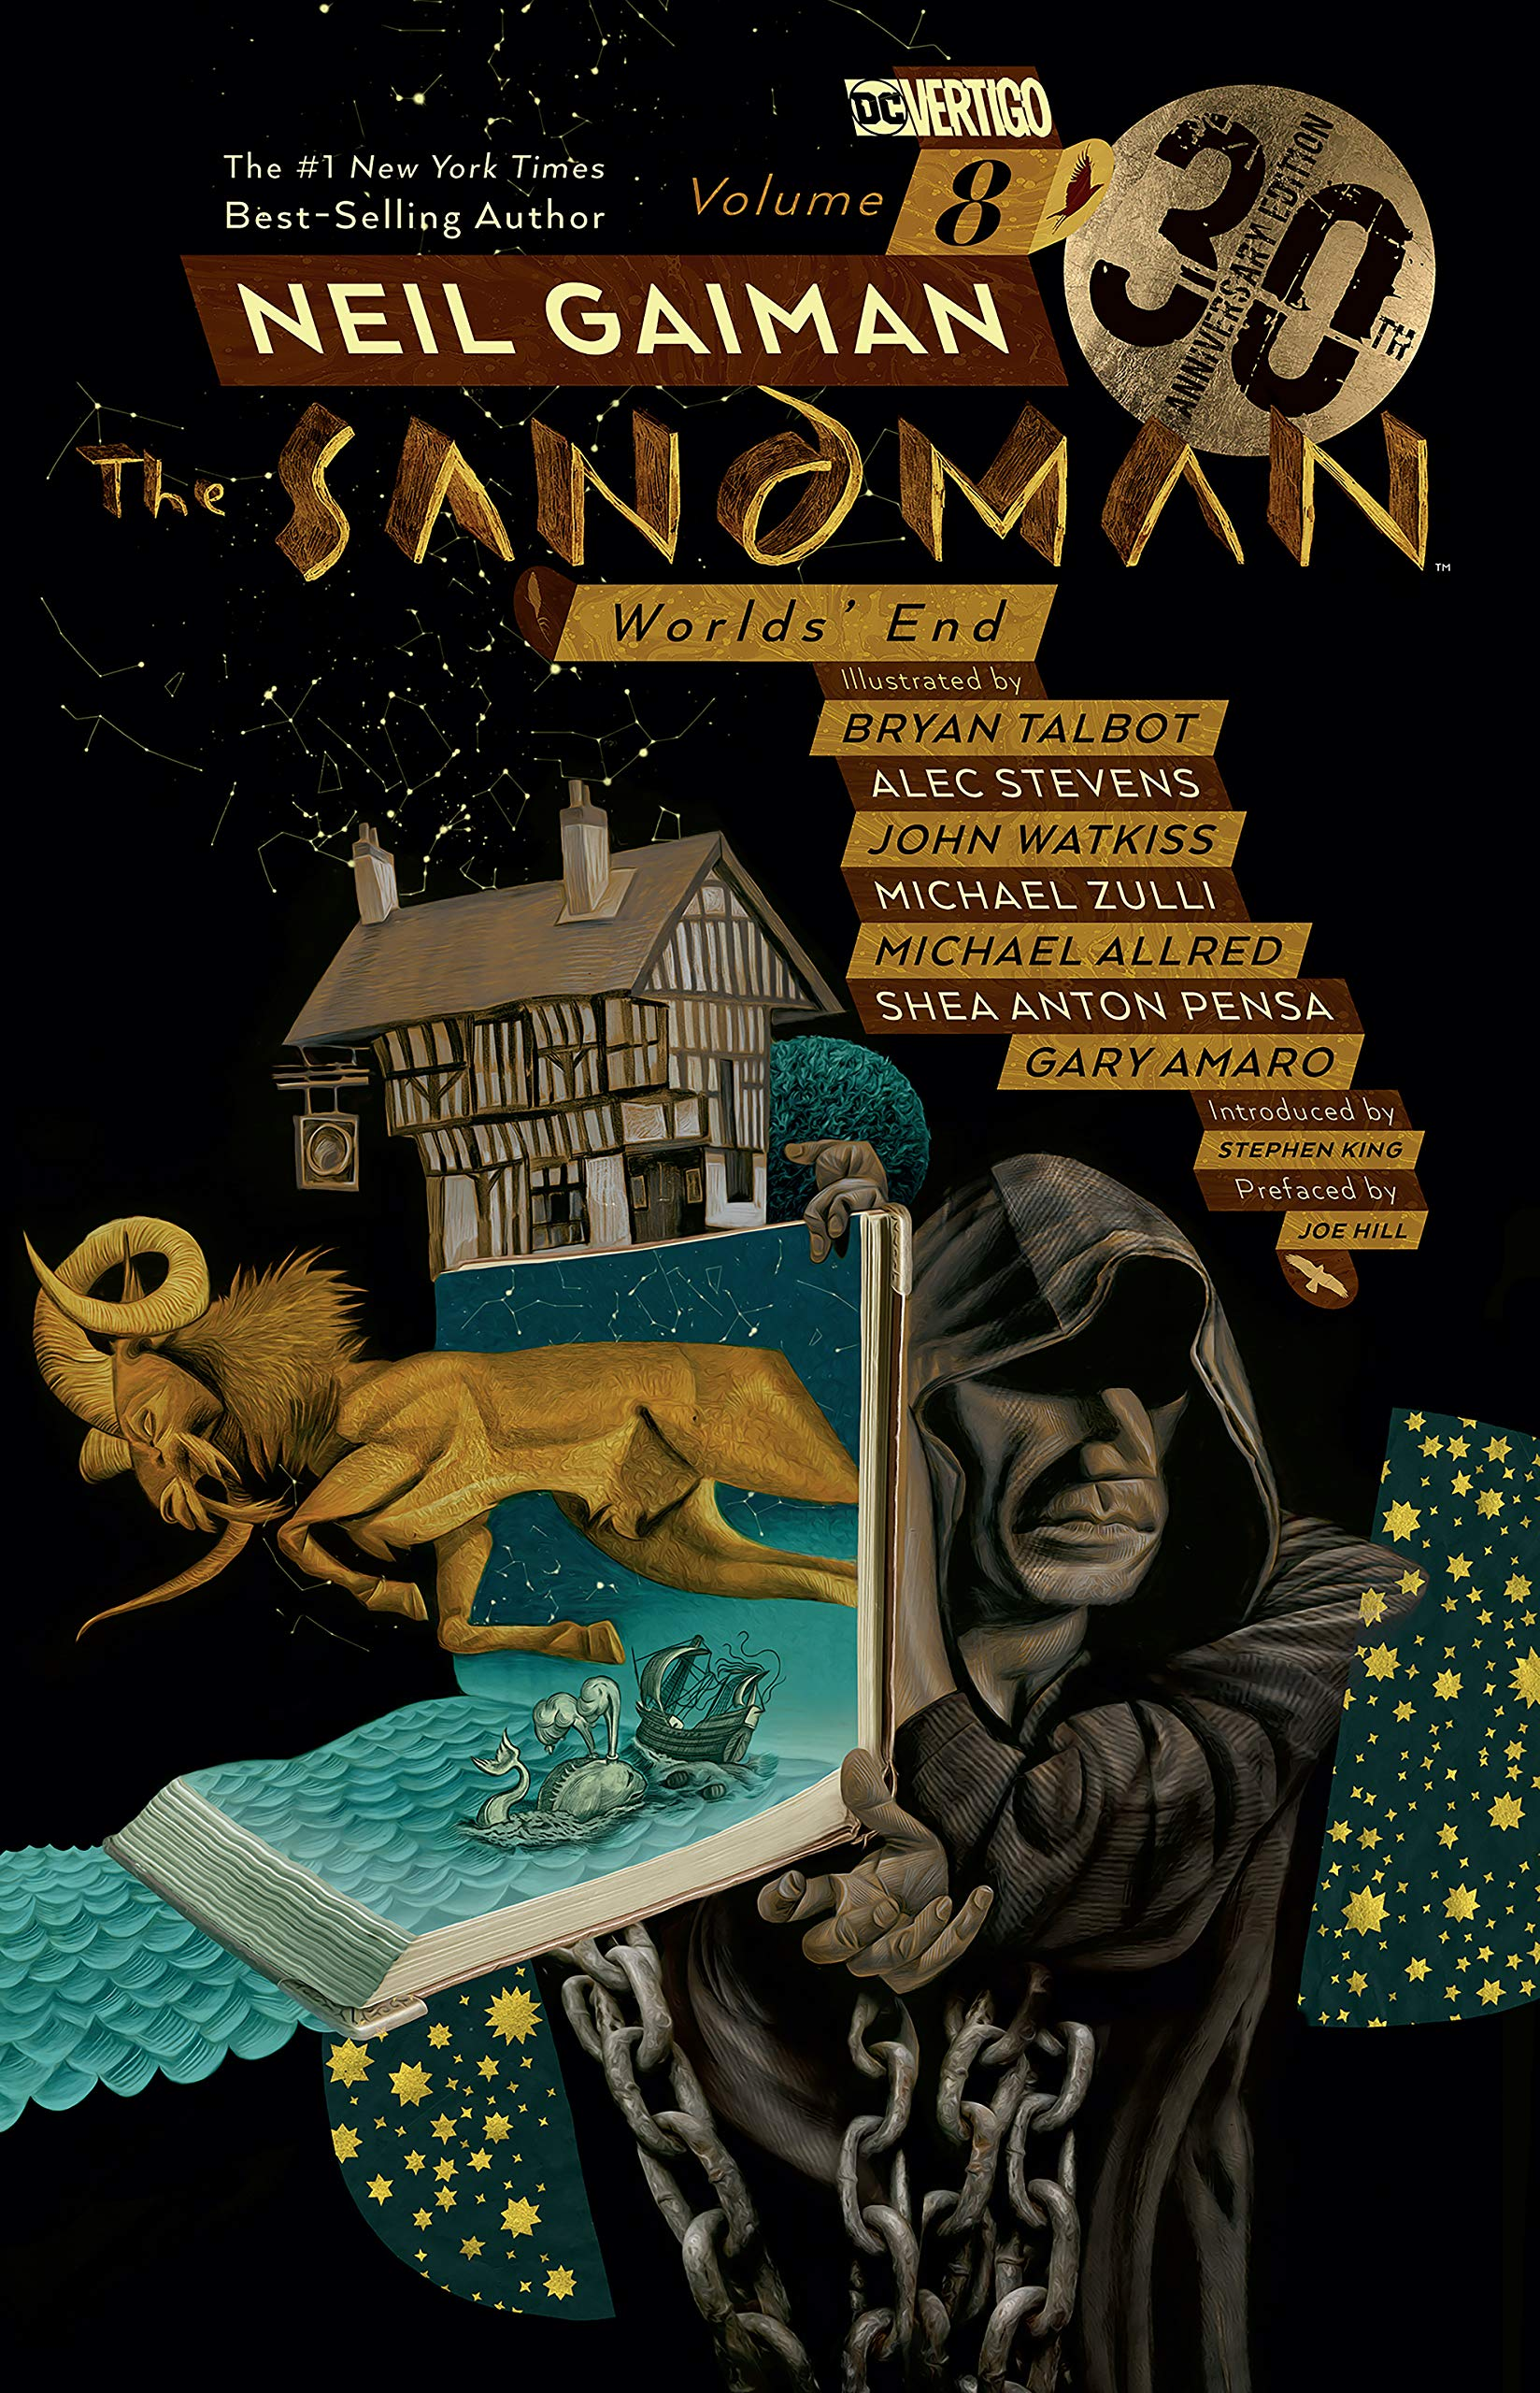 The Sandman Vol. 8: World's End 30th Anniversary Edition